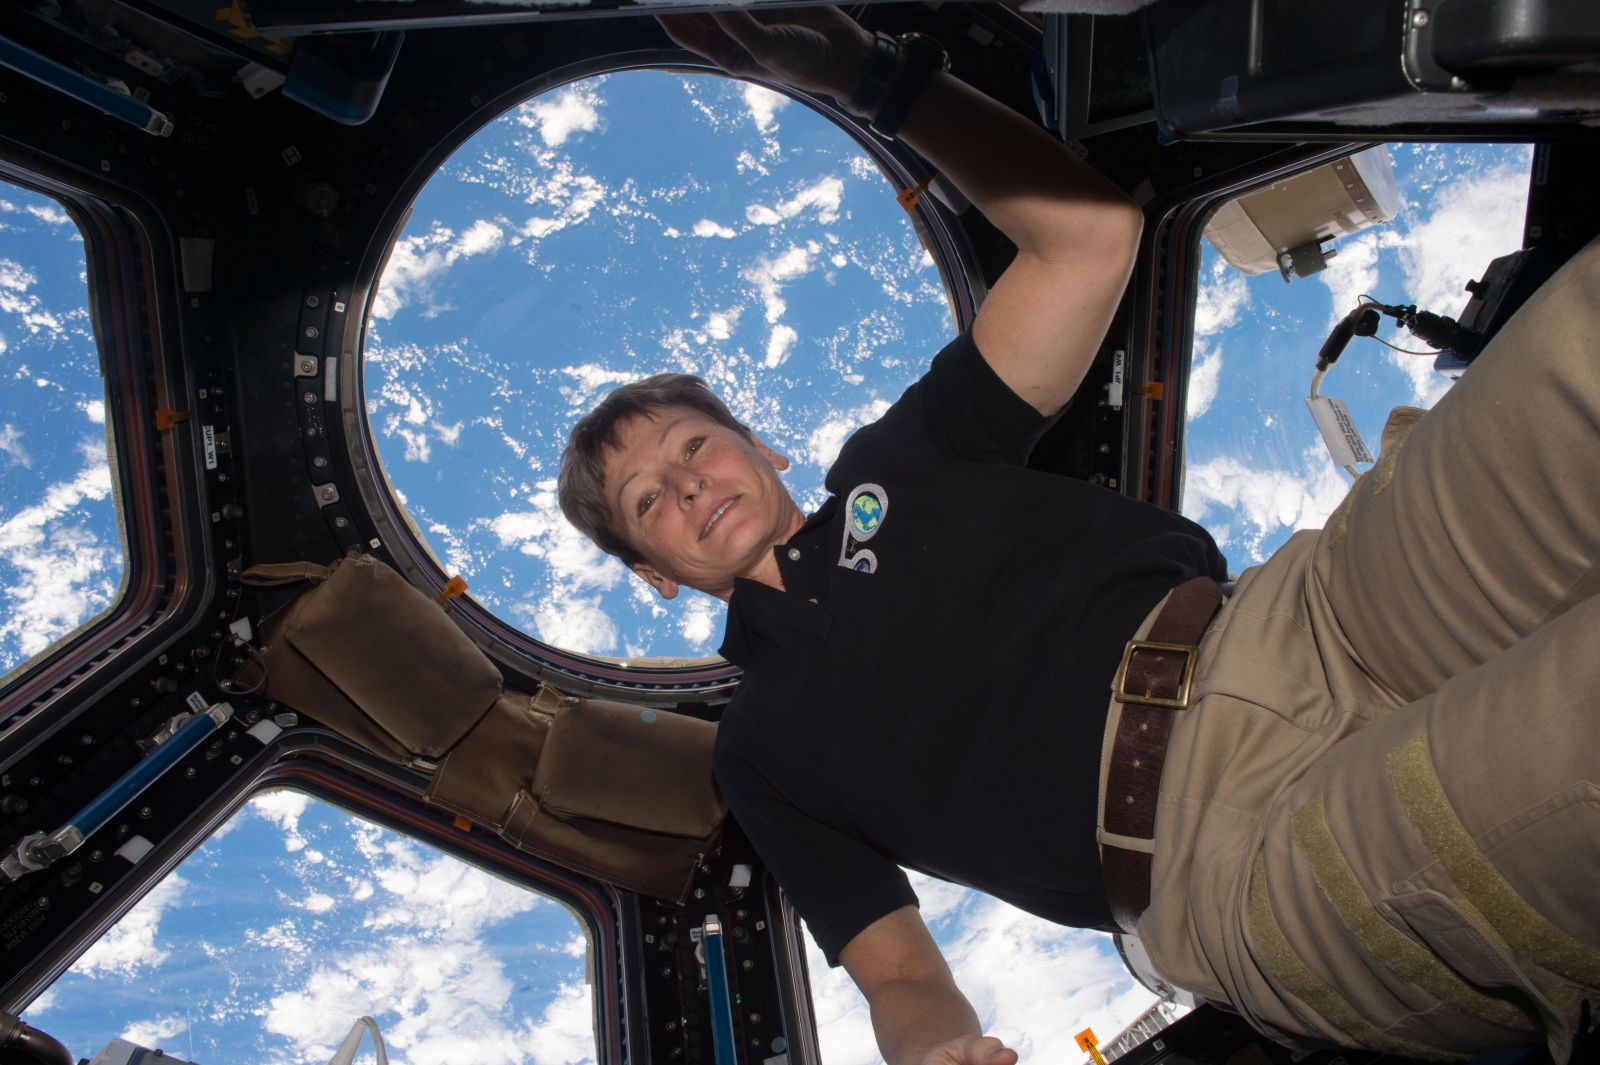 Peggy Whitson floats inside the International Space Station's Cupola window during Expedition 50. Photo Credit: NASA